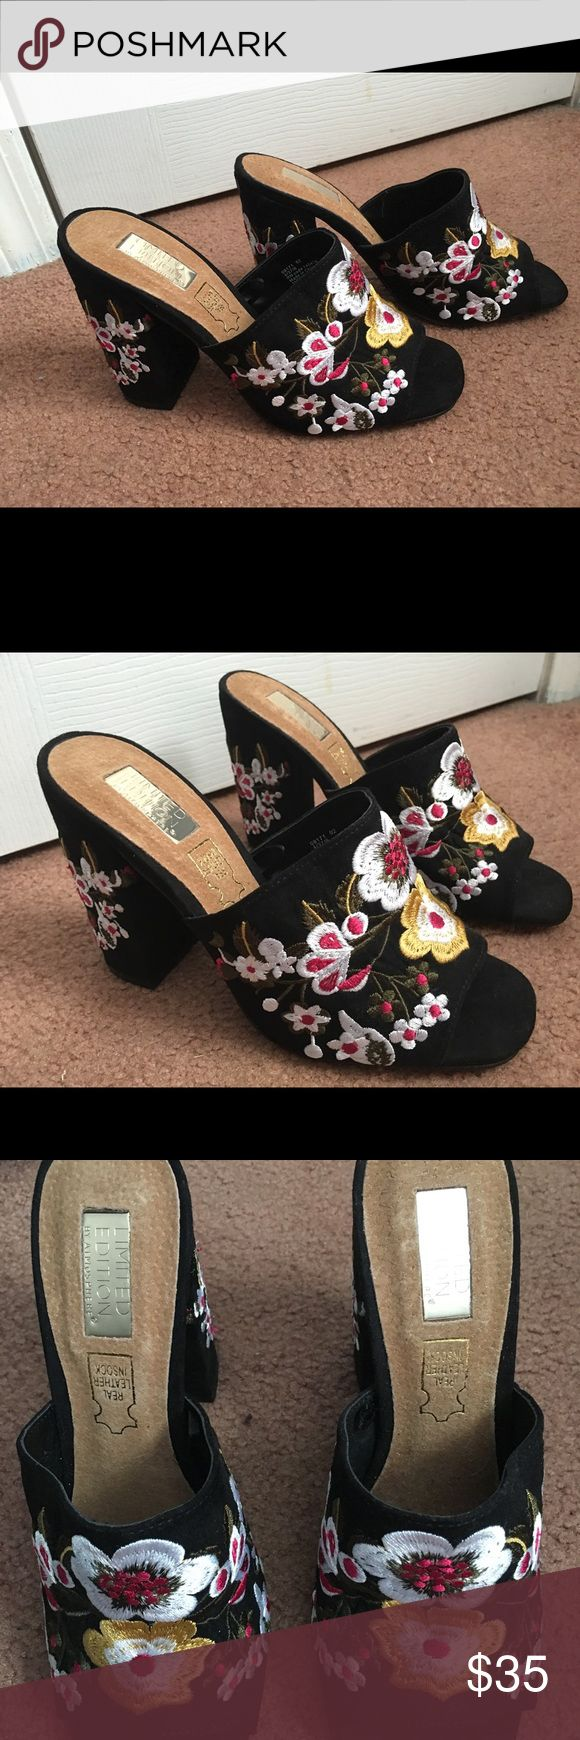 Black faux suede block shoe with floral embroidery Primark Limited Edition embroidered shoes. Faux suede with real leather in sock. Floral design. Never worn, mint condition. Super on trend. Primark Shoes Heels